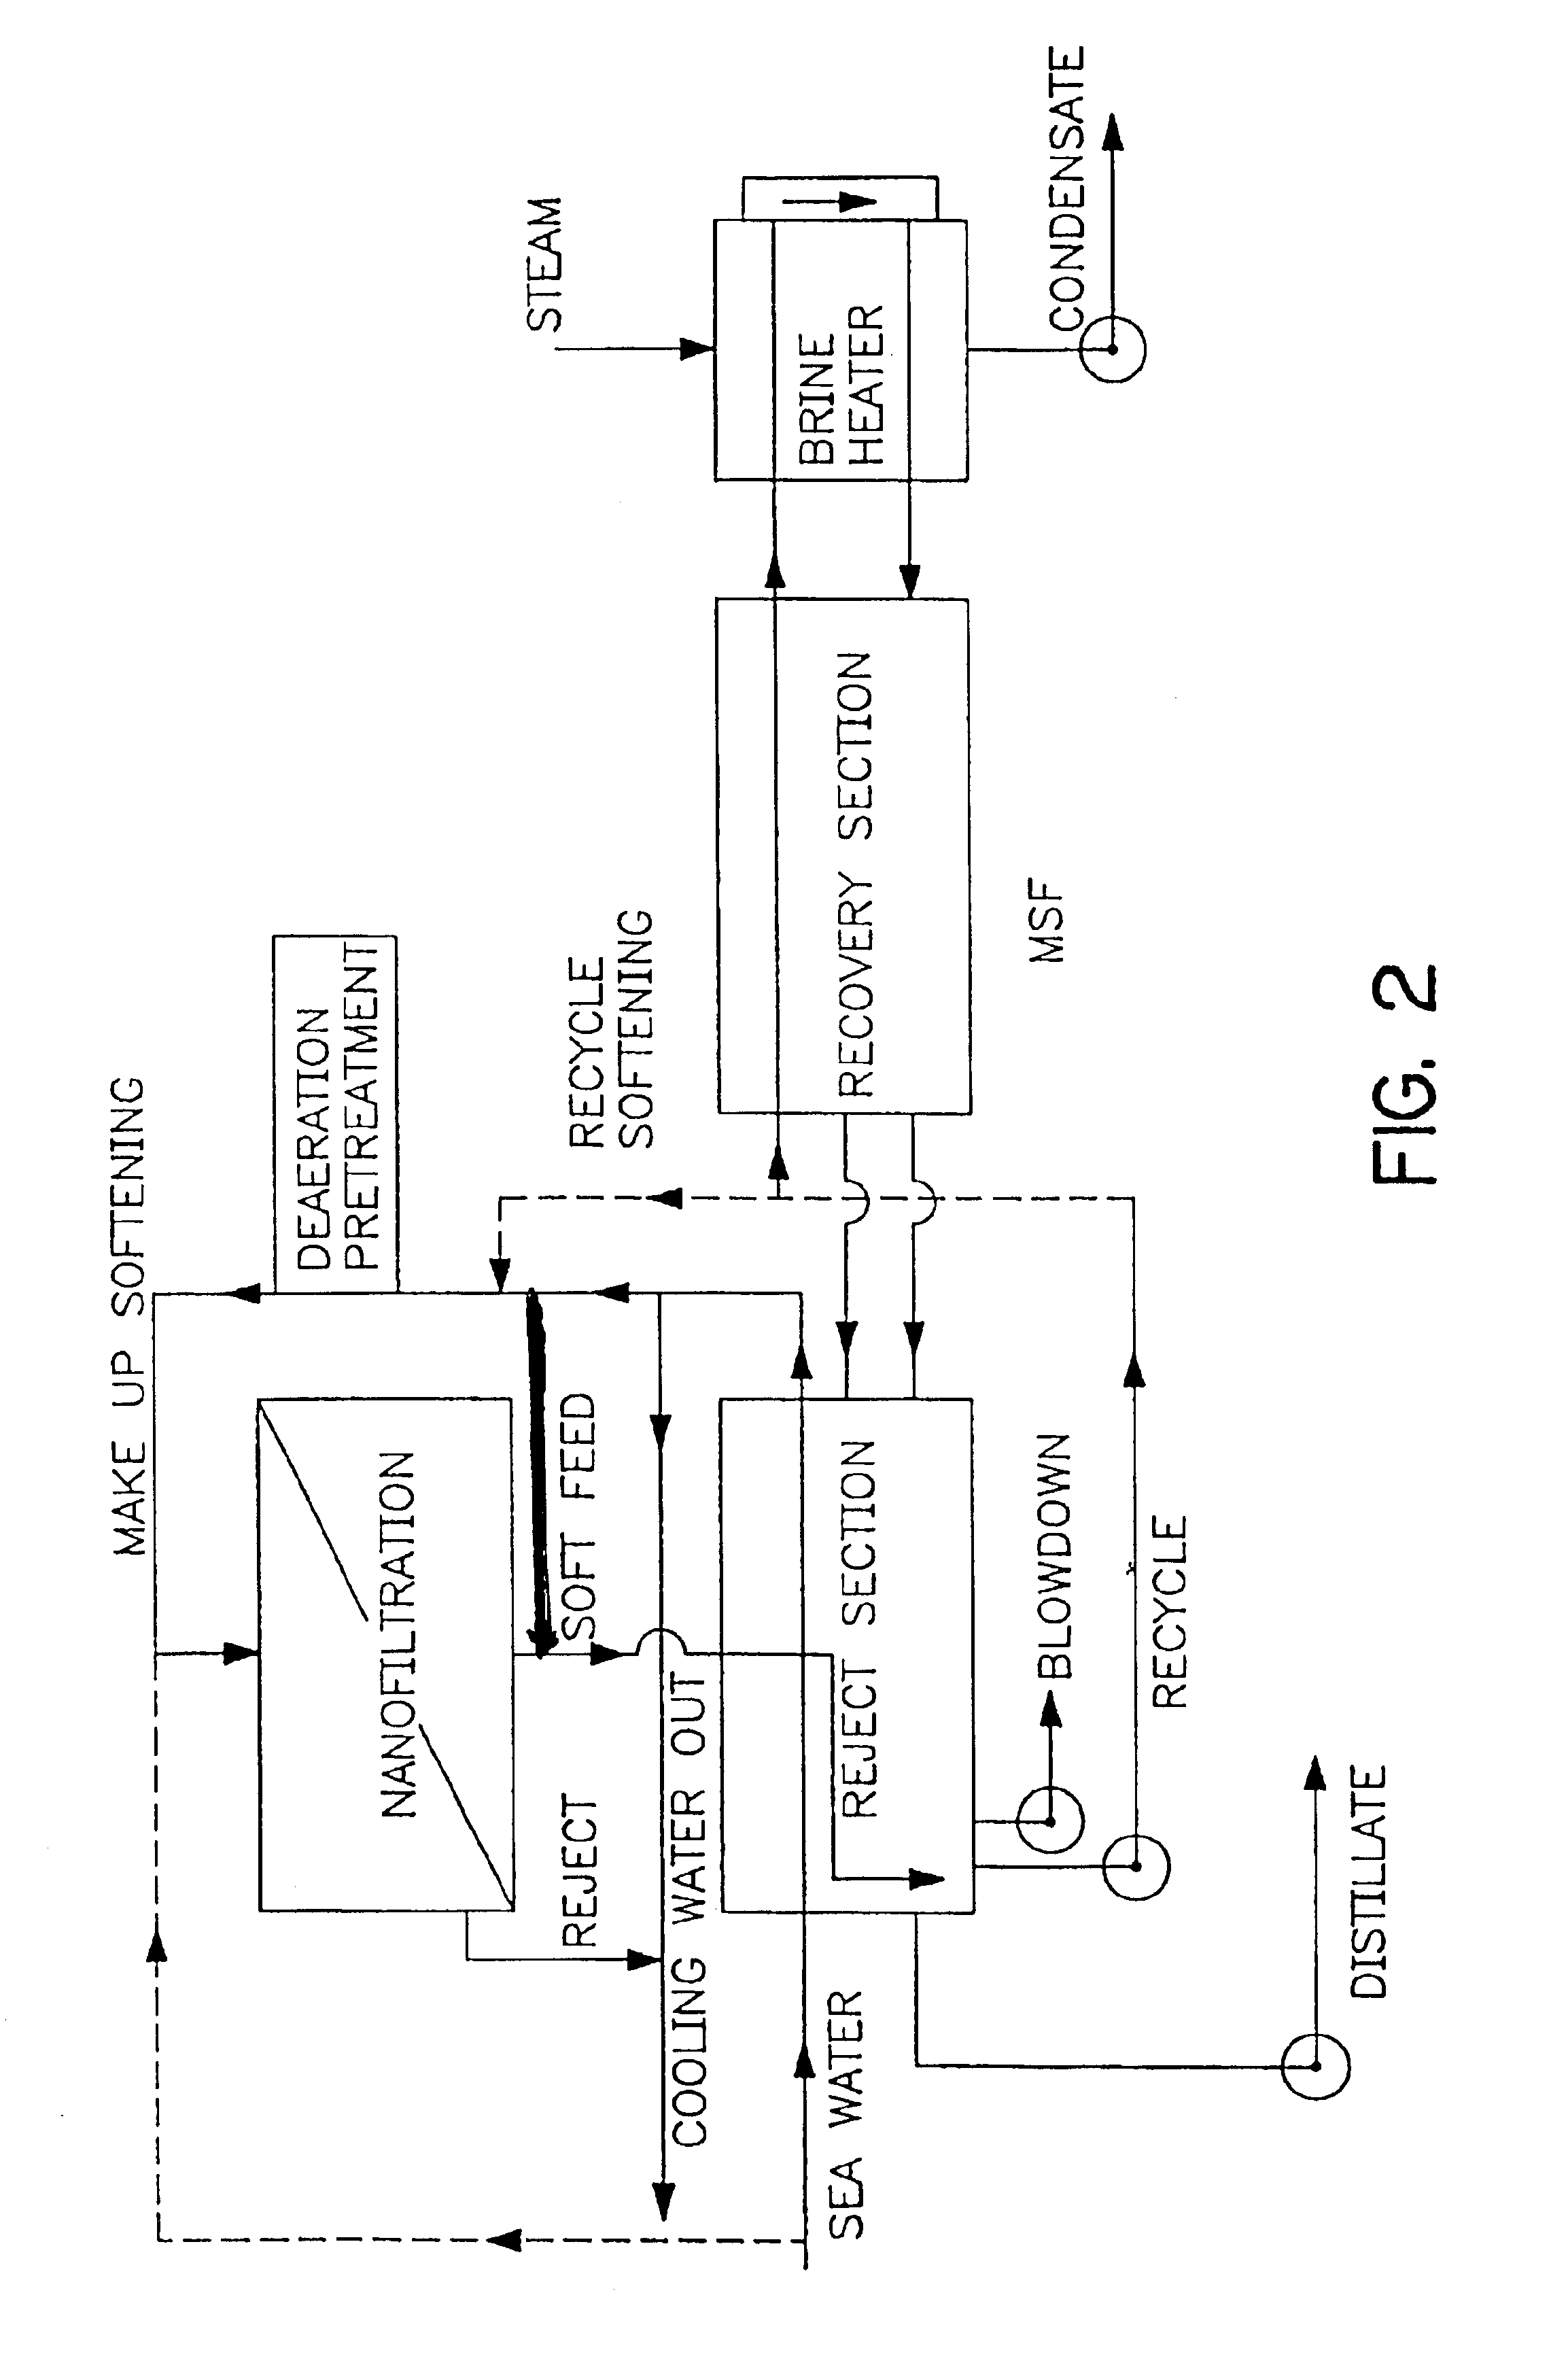 Patent US Salt water desalination process using ion